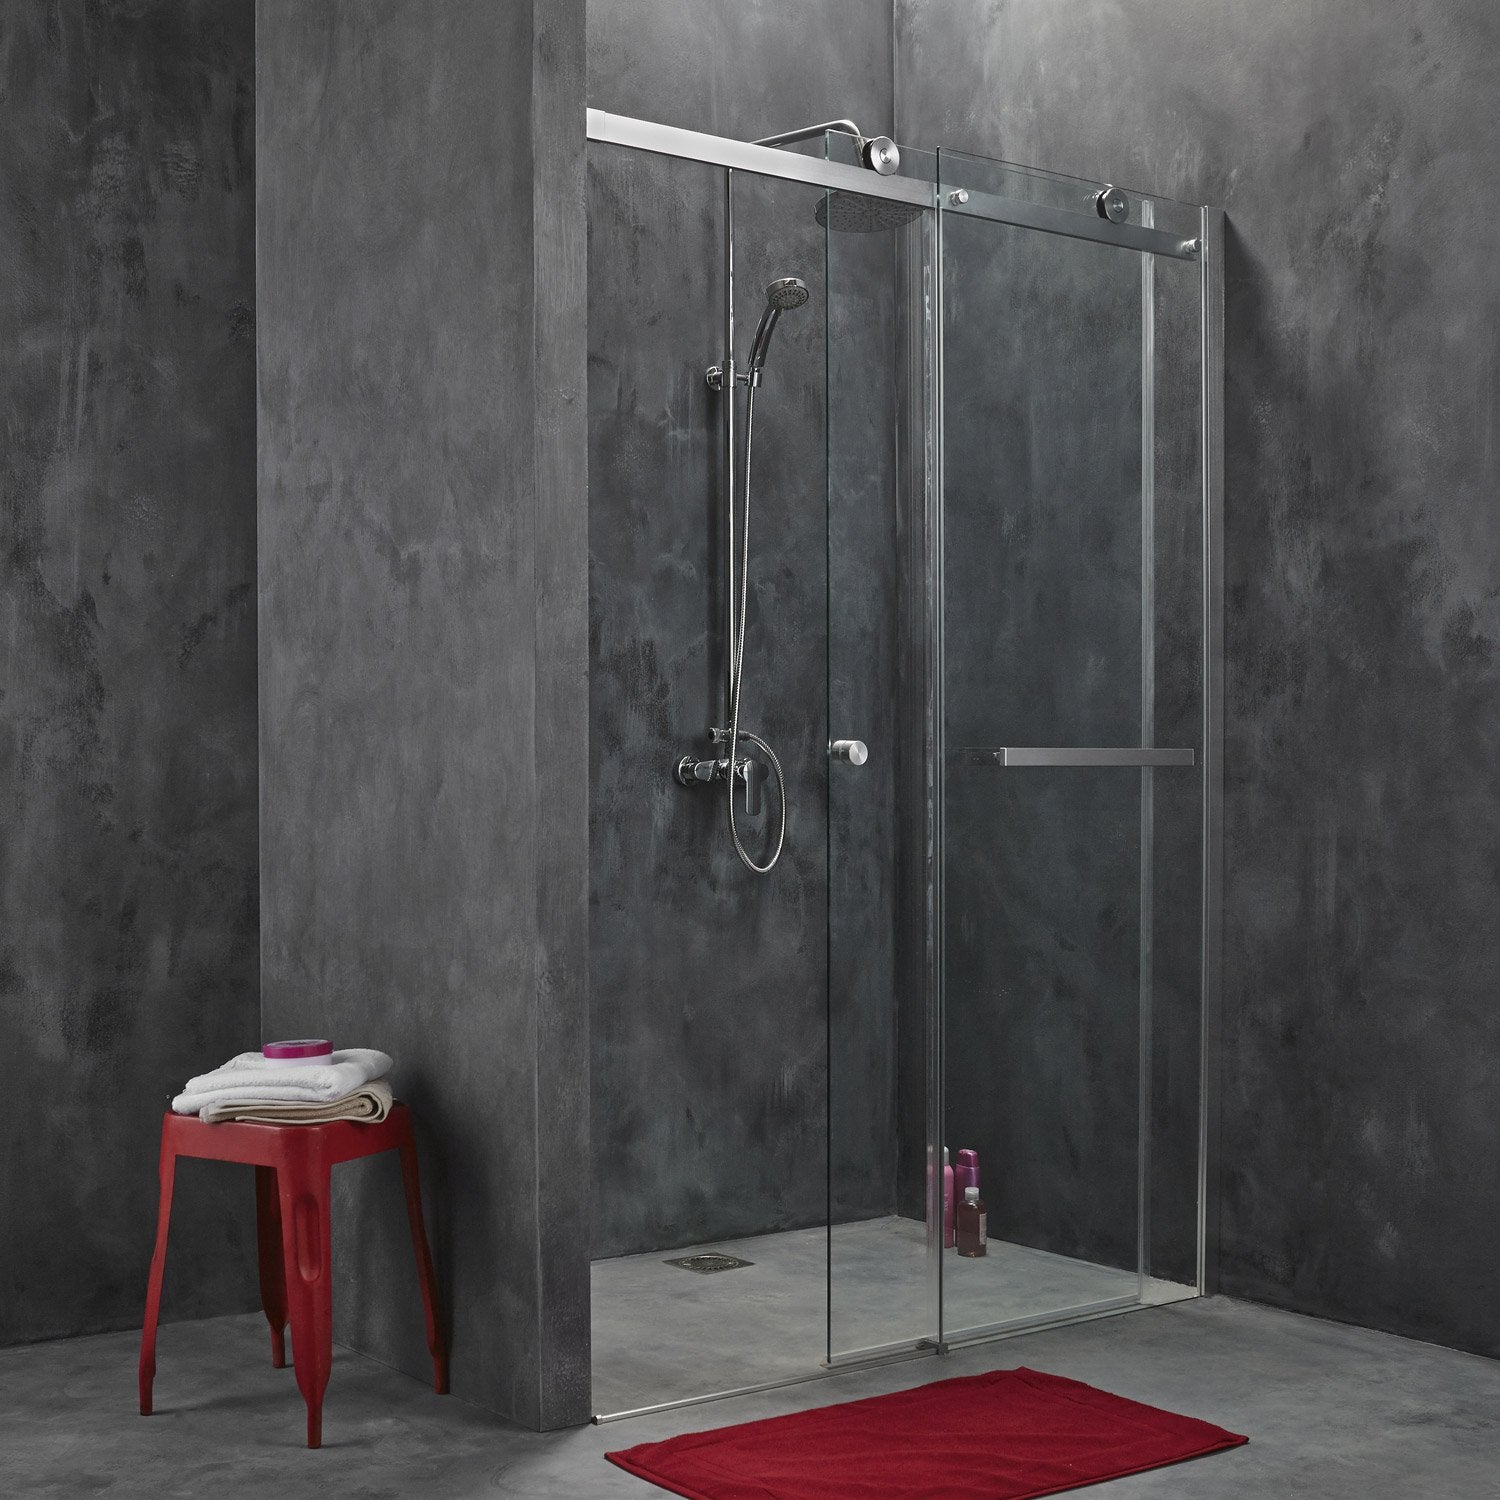 Porte de douche coulissante 137 140 cm profil chrom for Leroy merlin porte douche